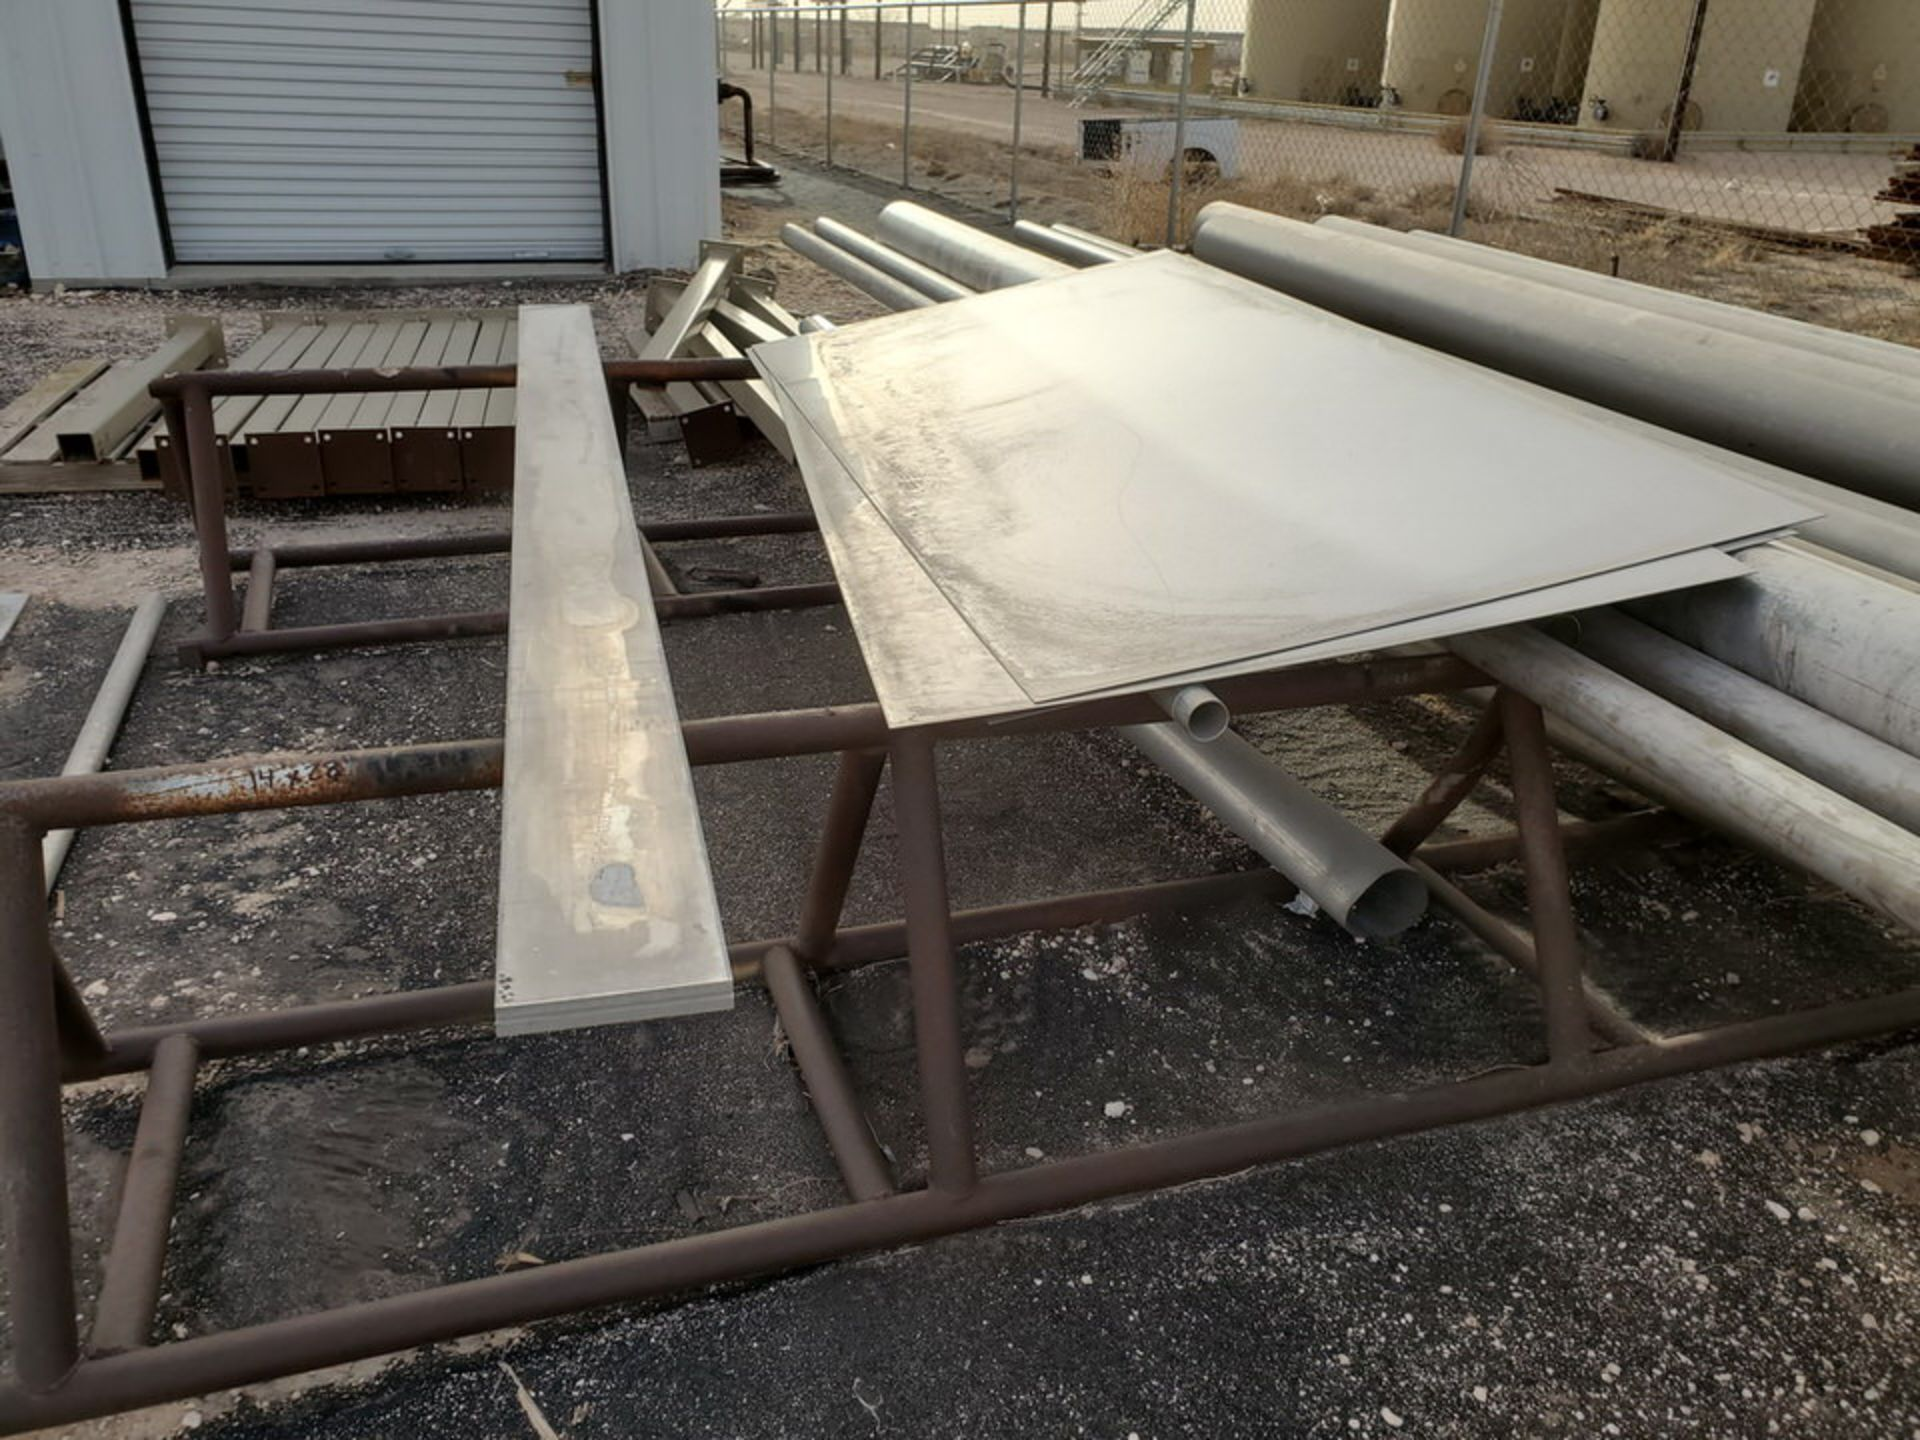 Assorted Matl. To Include But Not Limited To: S/S Flat Bar, Pipe & Sheets (Rack Excluded) - Image 6 of 22